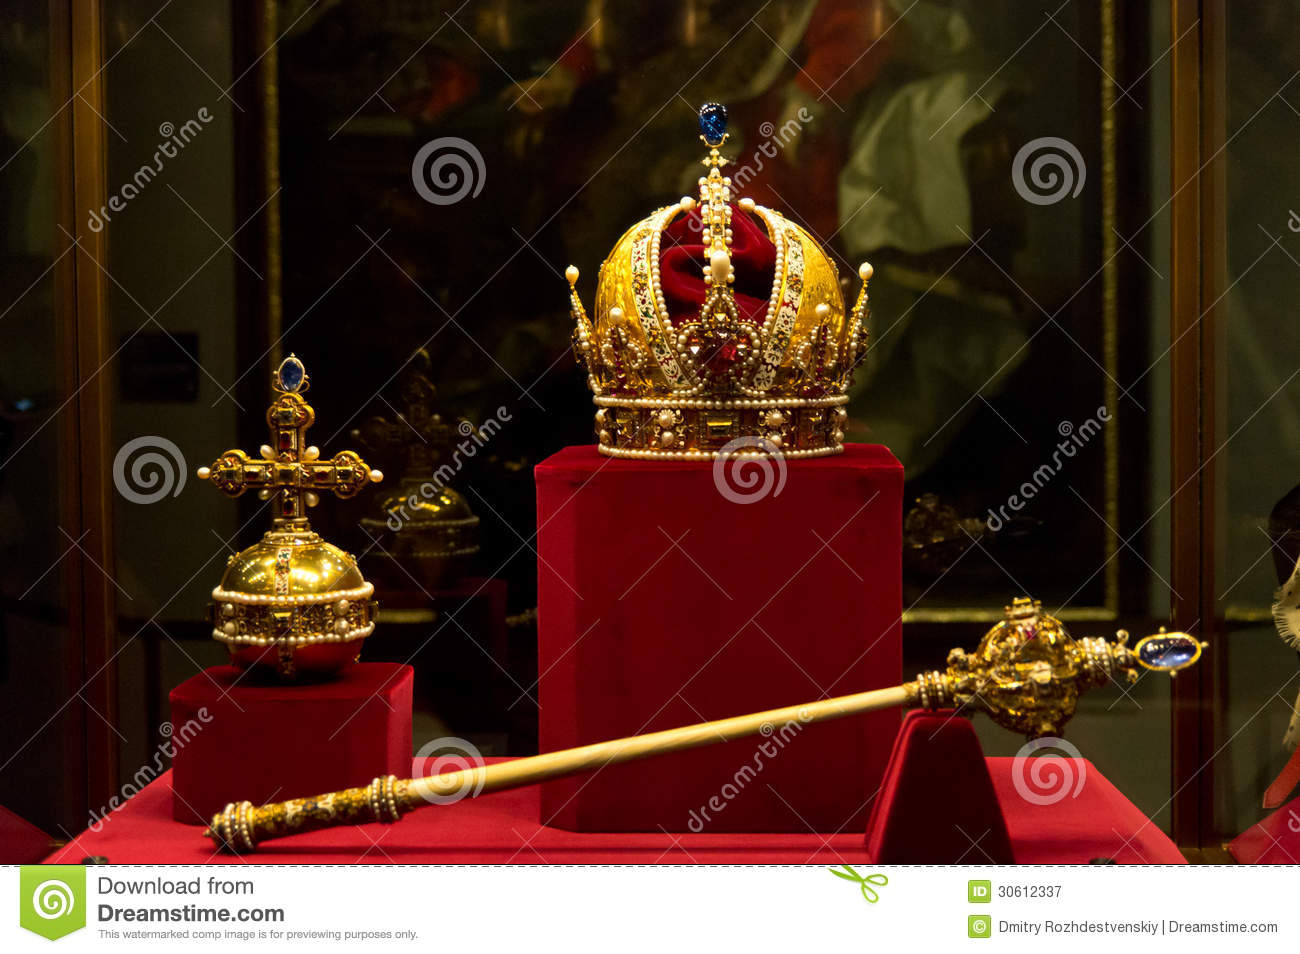 Royal king chair - Habsburgs Crown Sceptre And Orb Royalty Free Stock